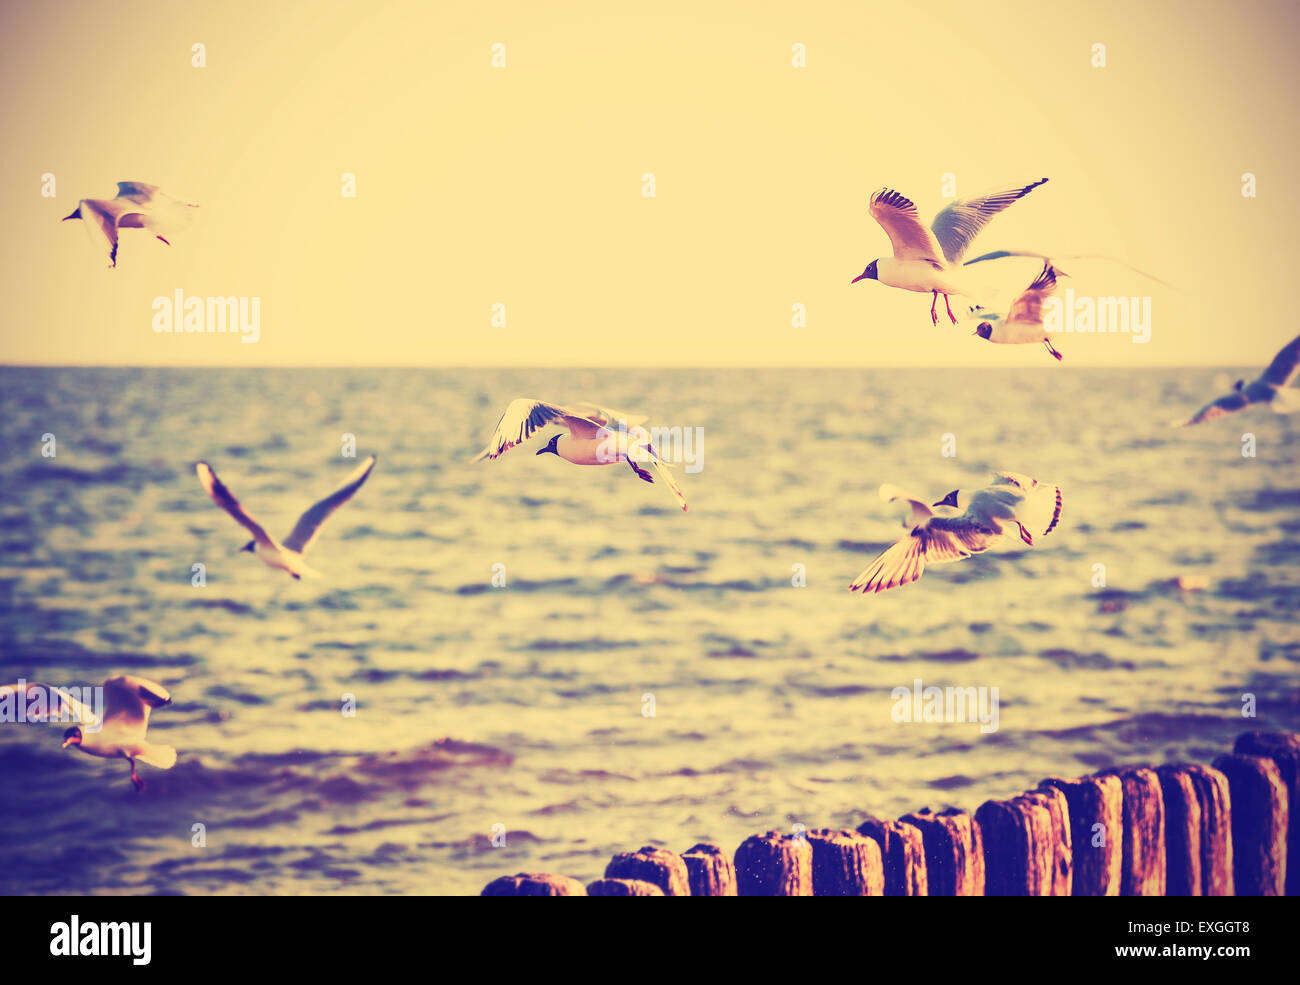 Vintage retro filtered birds on the sea, nature background, old film effect. - Stock Image